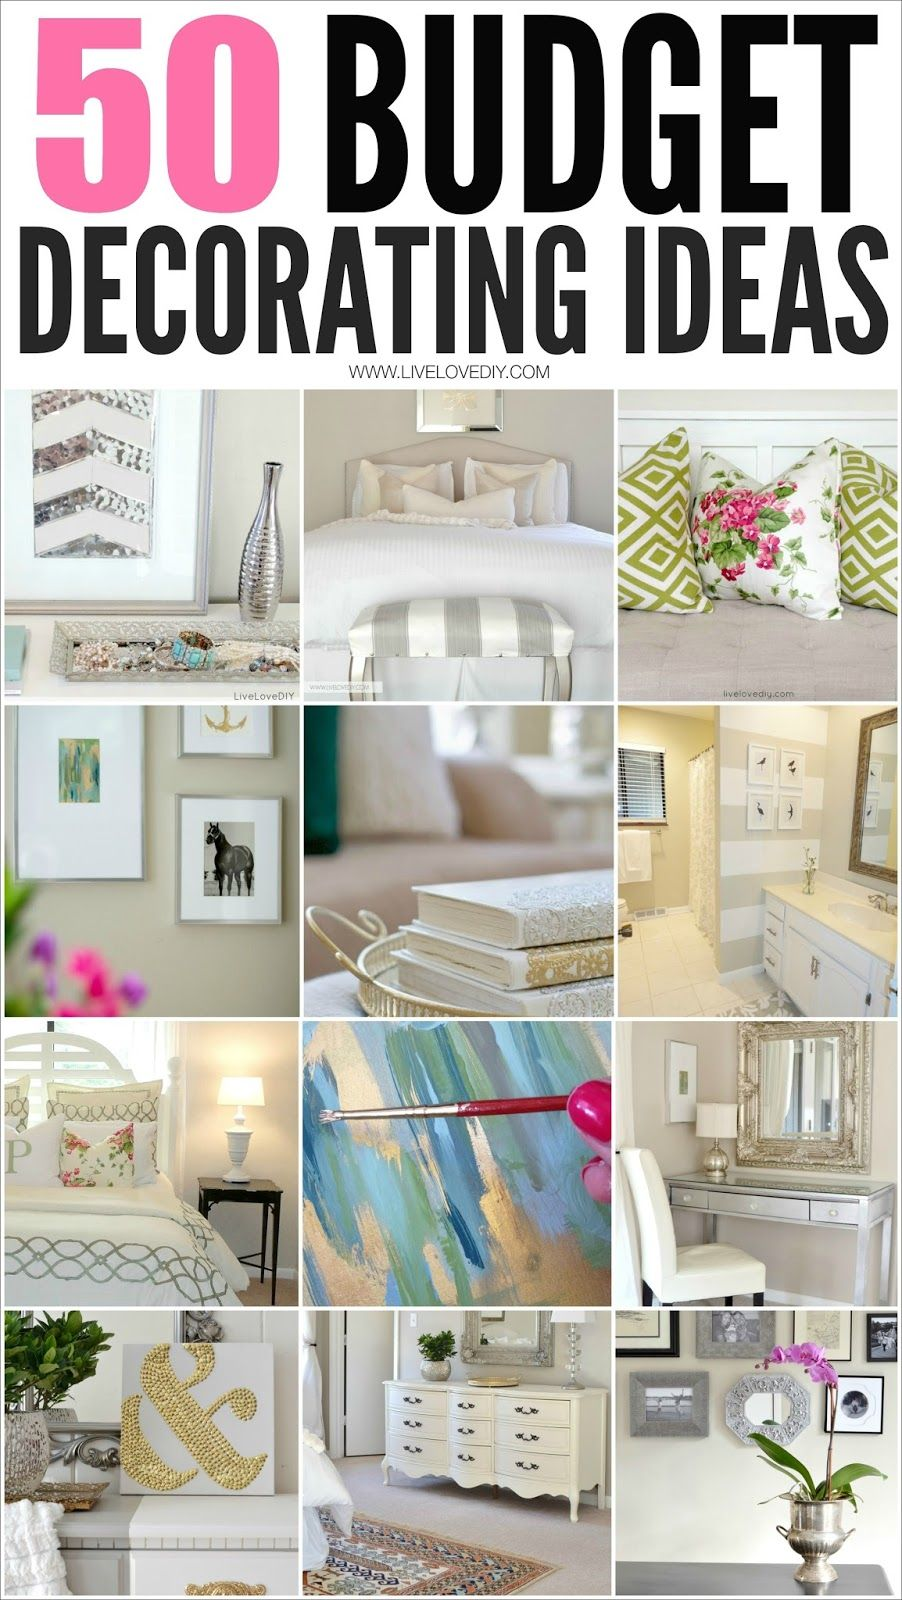 50 Budget Decorating Tips You Should Know! (LiveLoveDIY) | Budgeting ...